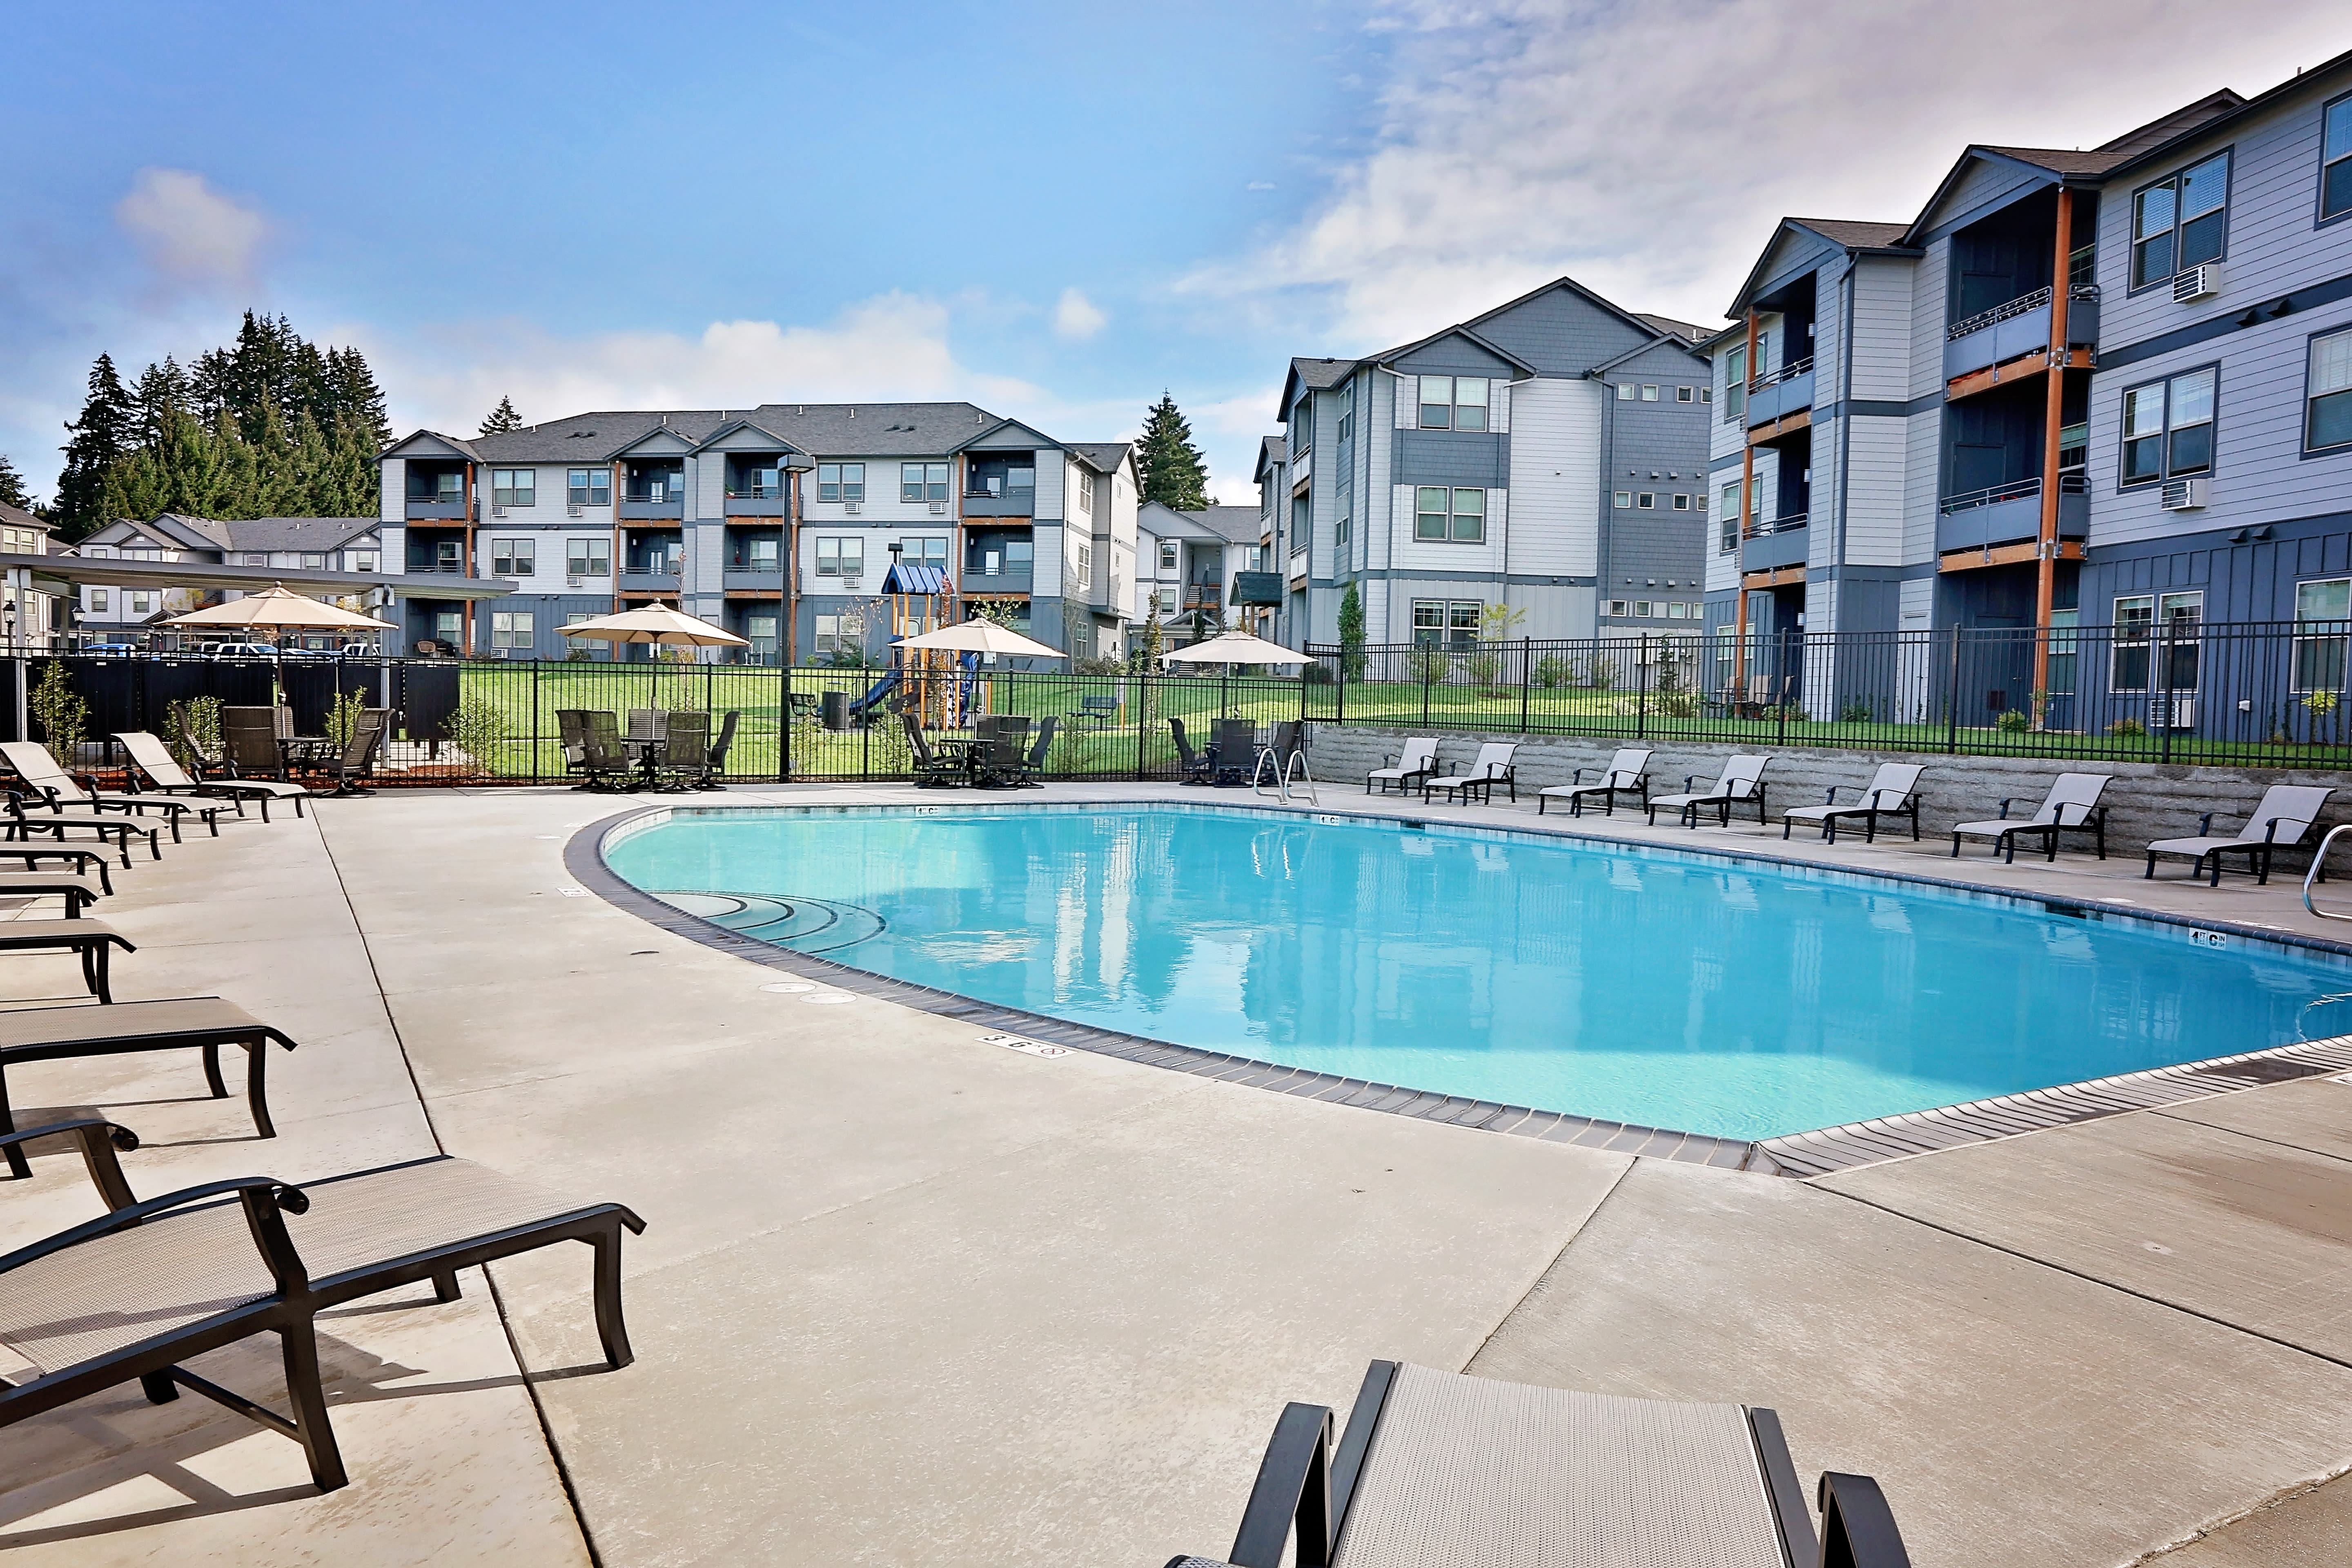 Our Apartments in Philomath, Oregon offer a Swimming Pool